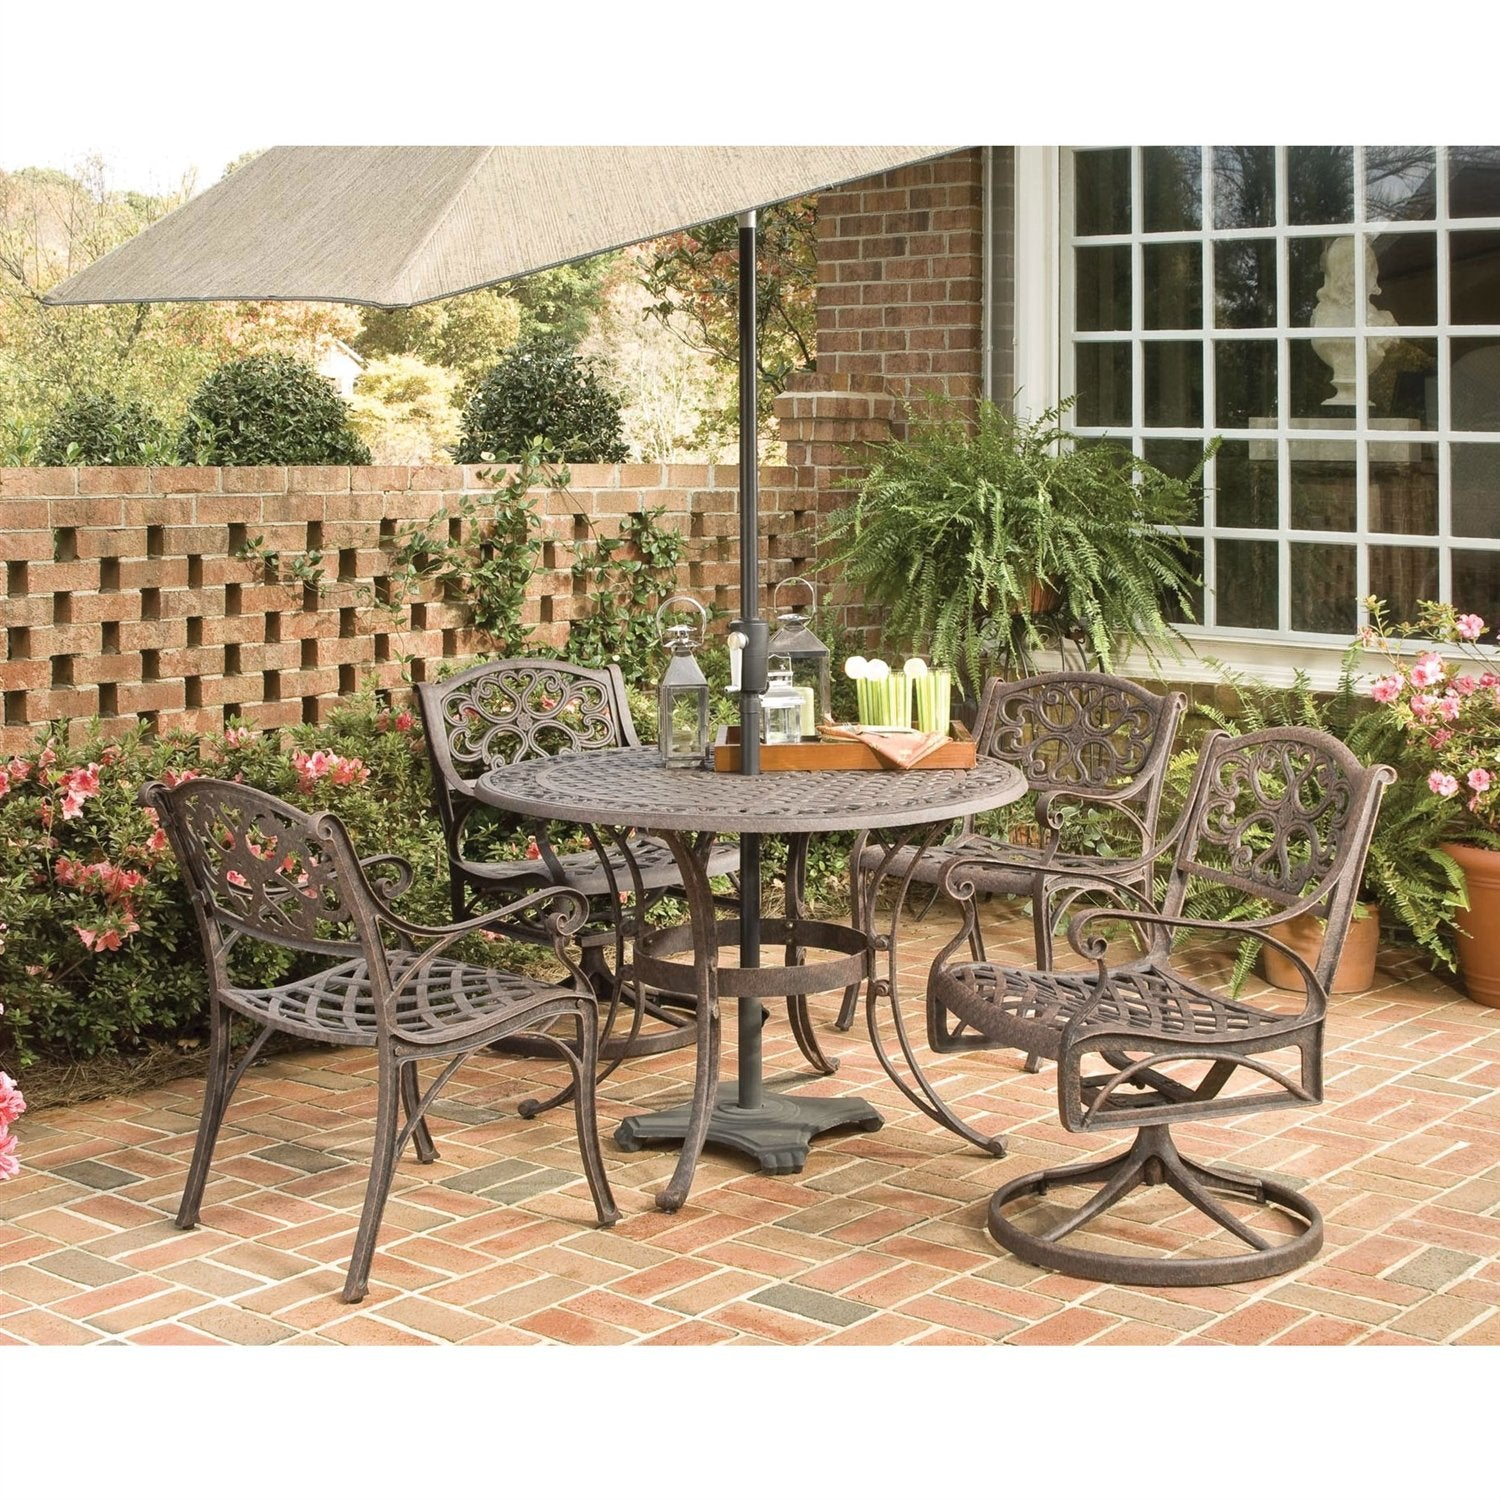 48 Inch Round Outdoor Patio Table In Rust Brown Metal With Umbrella Ho